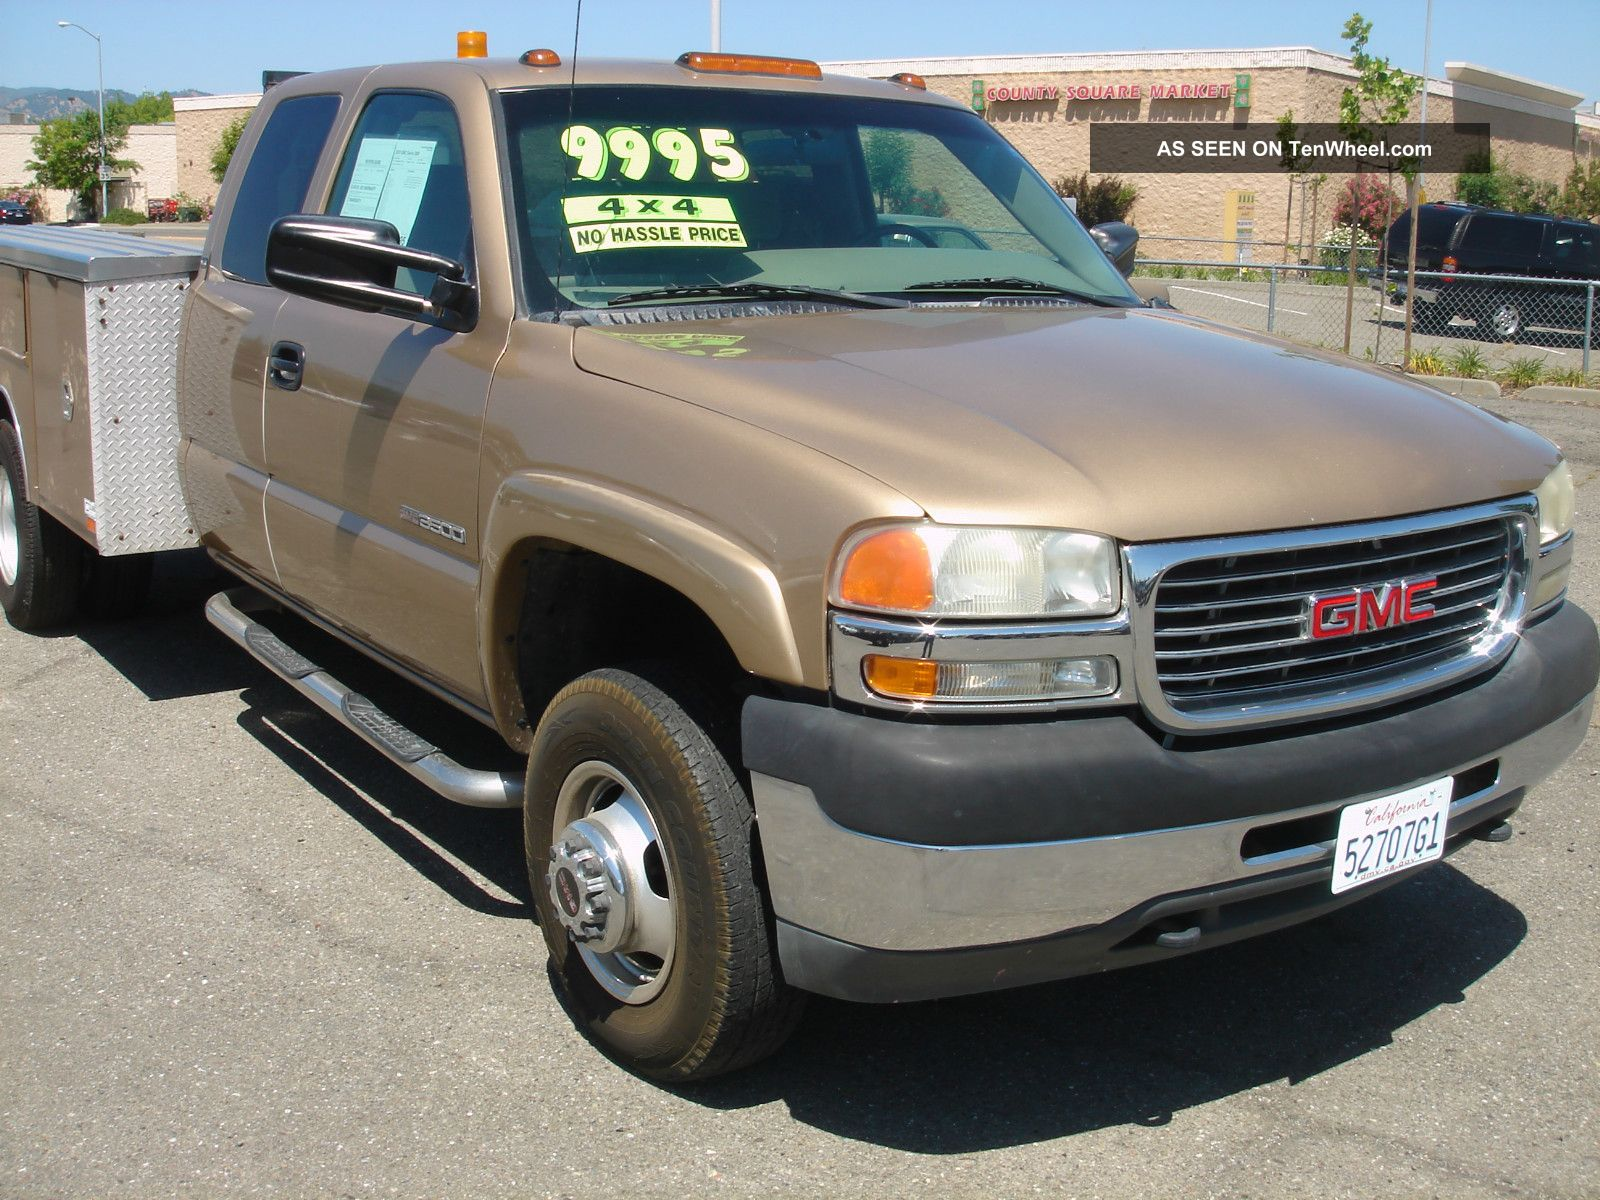 2001 gmc sierra 3500hd dually 4x4 extended cab utility. Black Bedroom Furniture Sets. Home Design Ideas